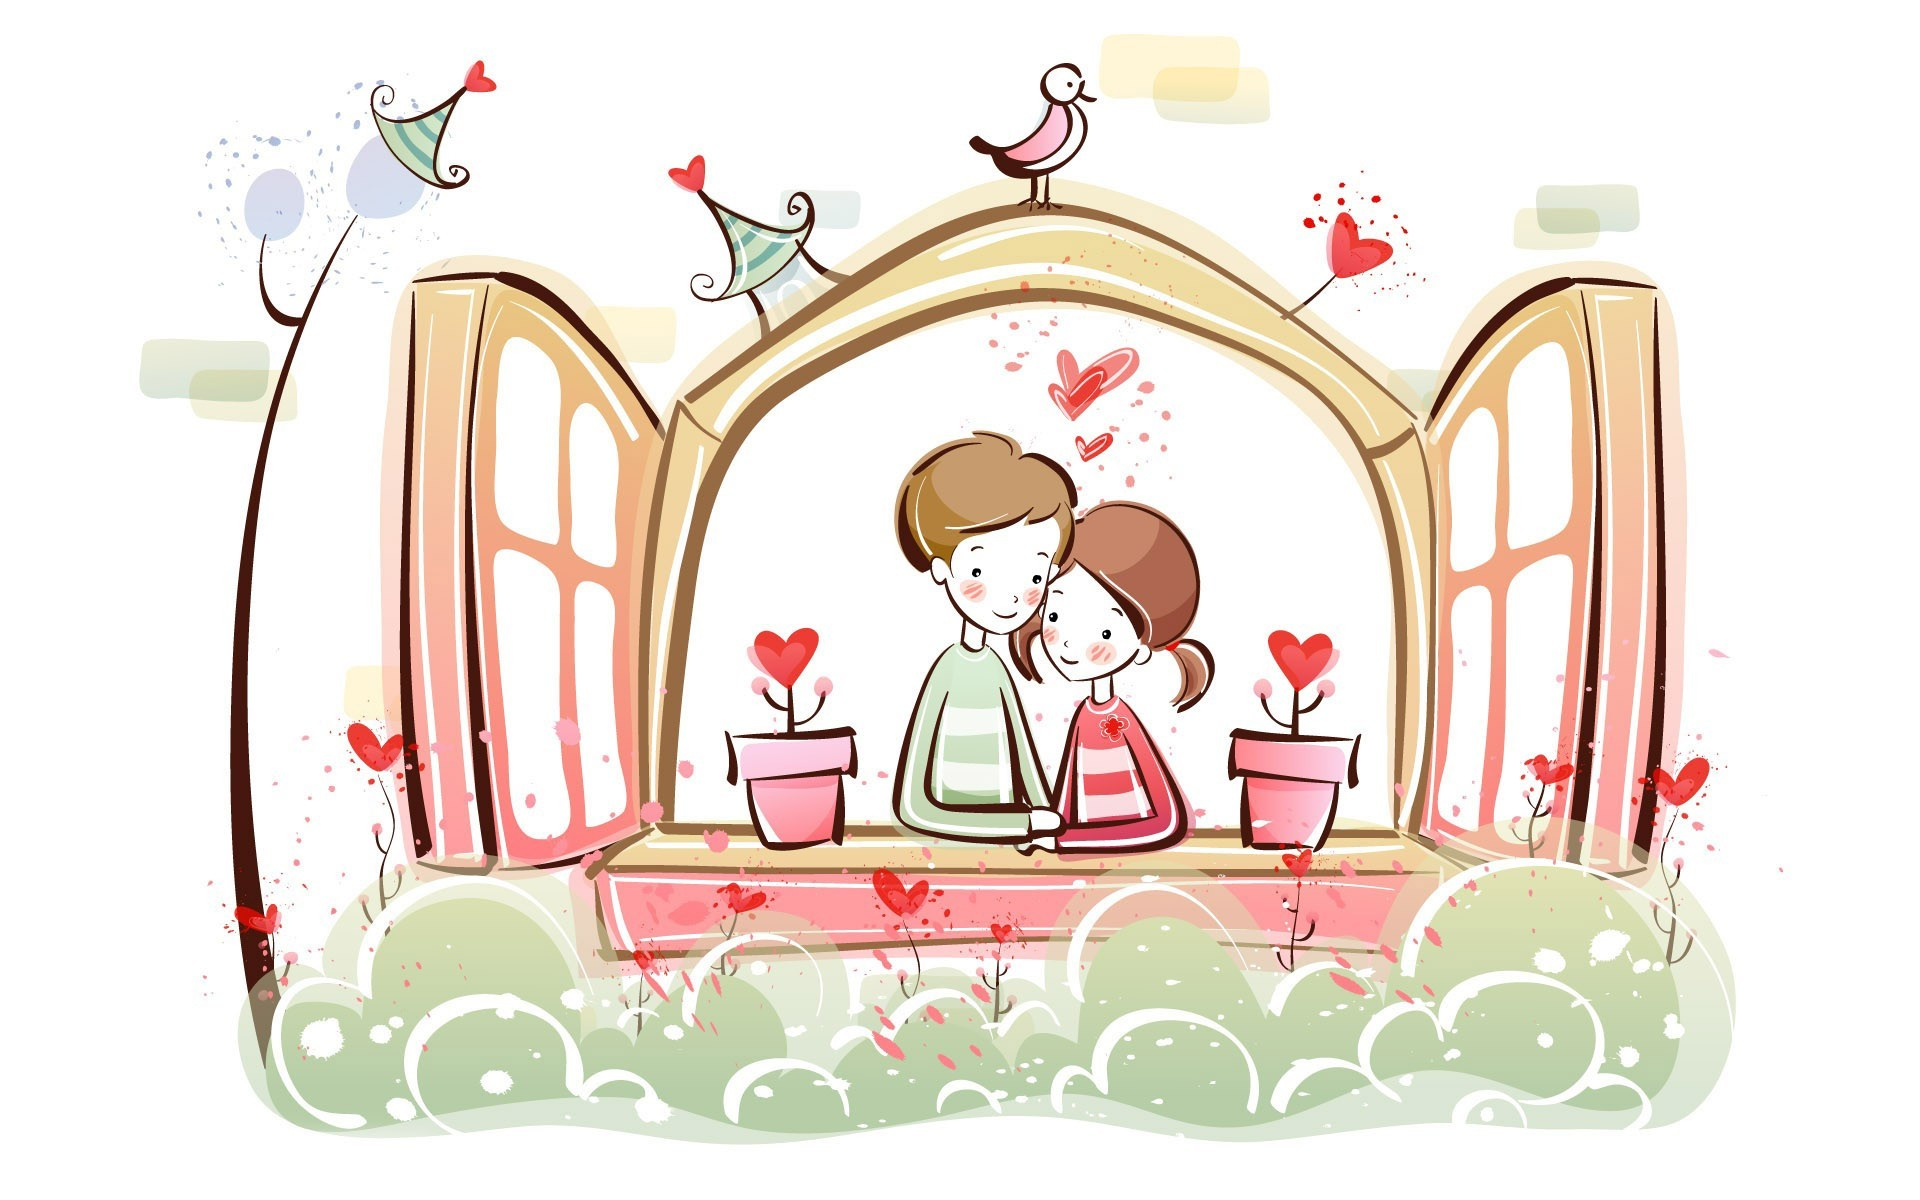 New Love cartoon Wallpaper : cartoon love wallpaper jpg 259657